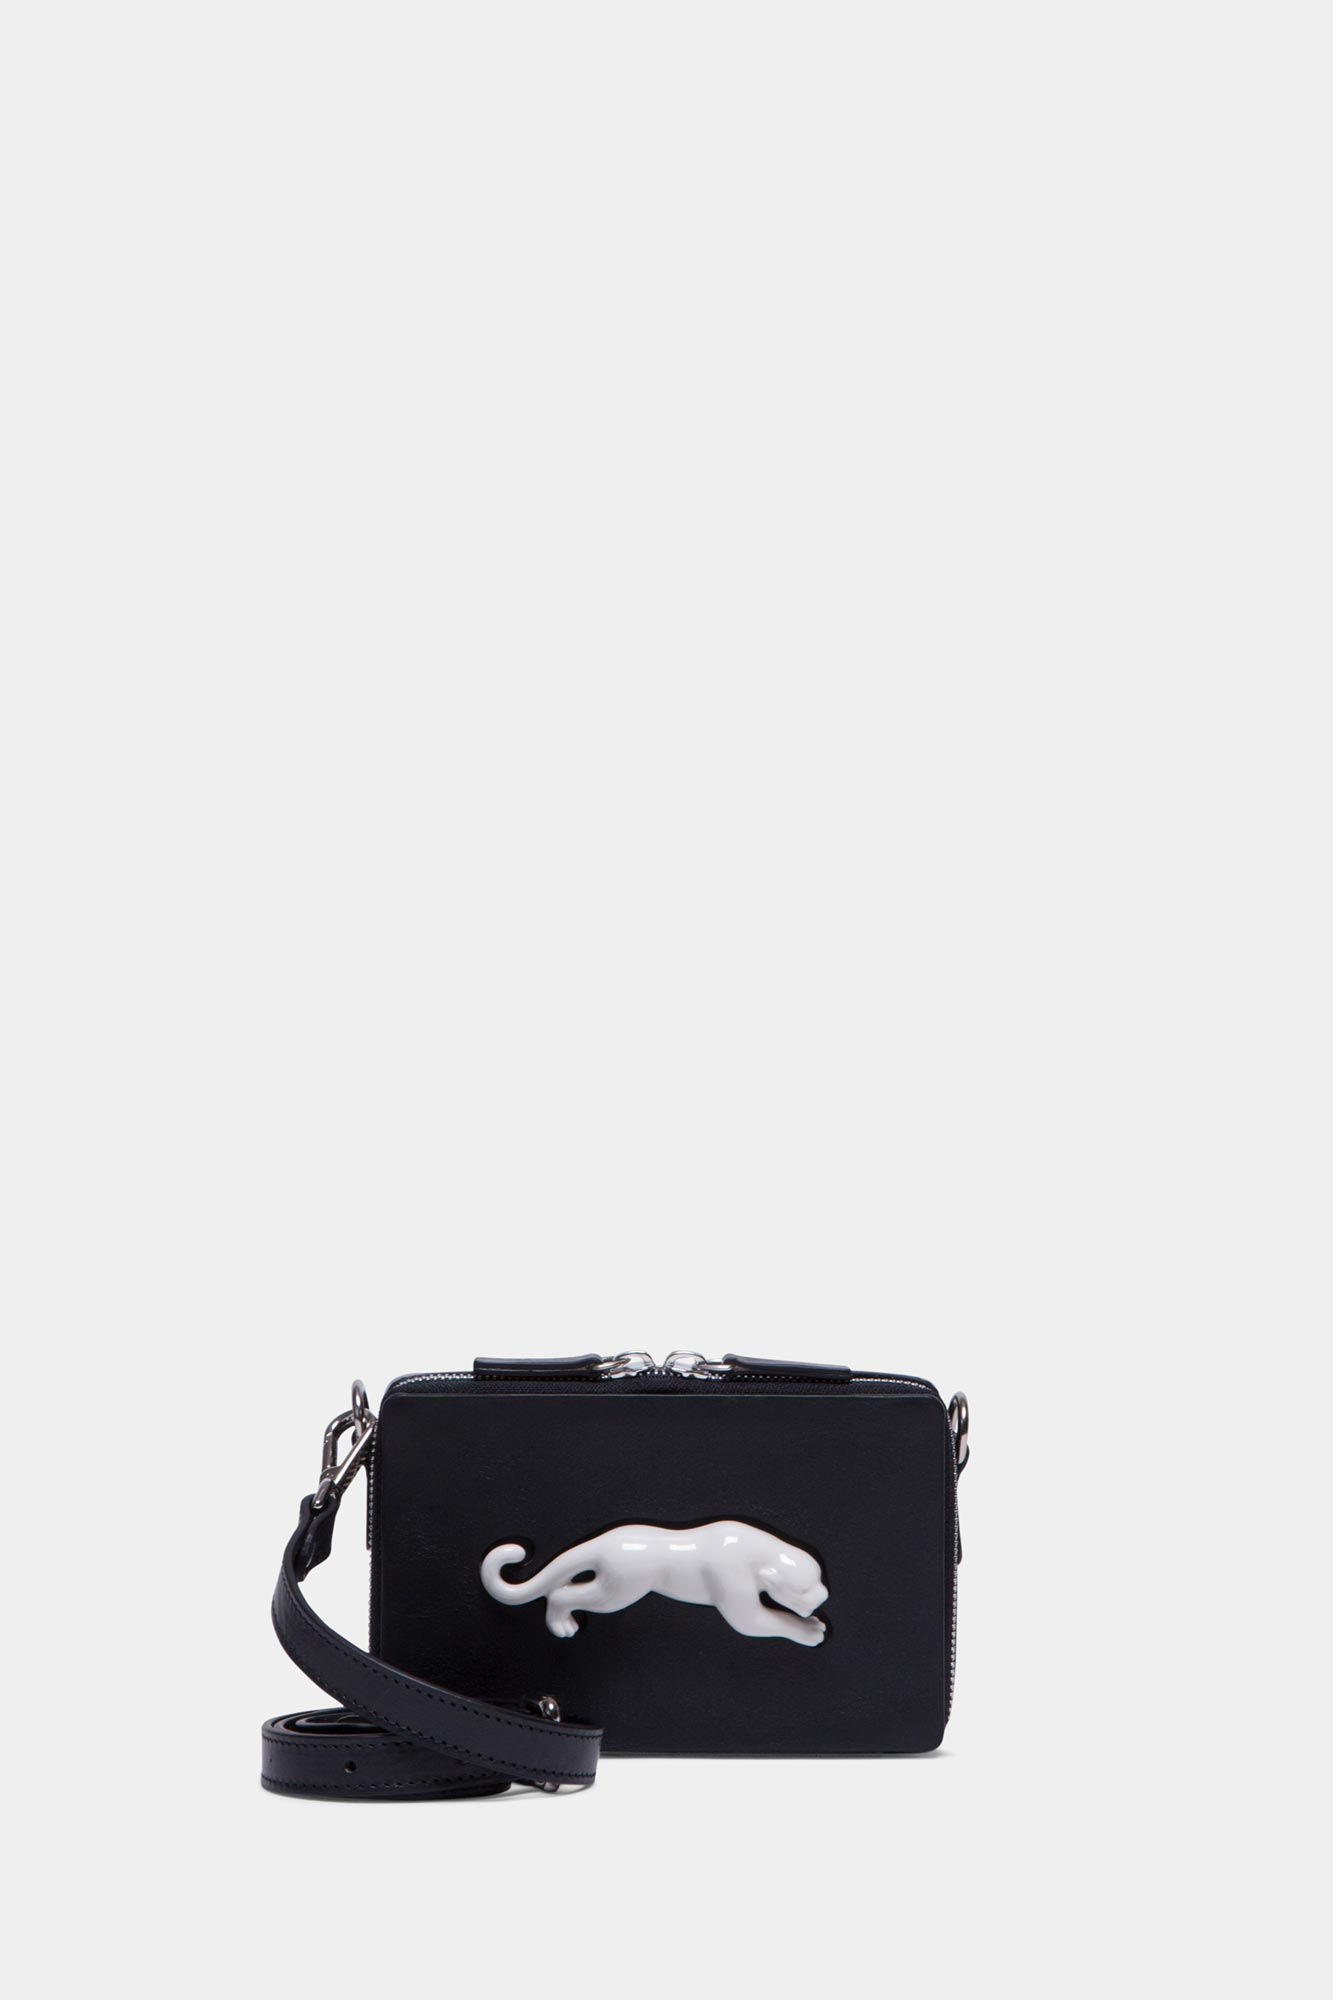 Rectangular Panther Mini Bag veg Black